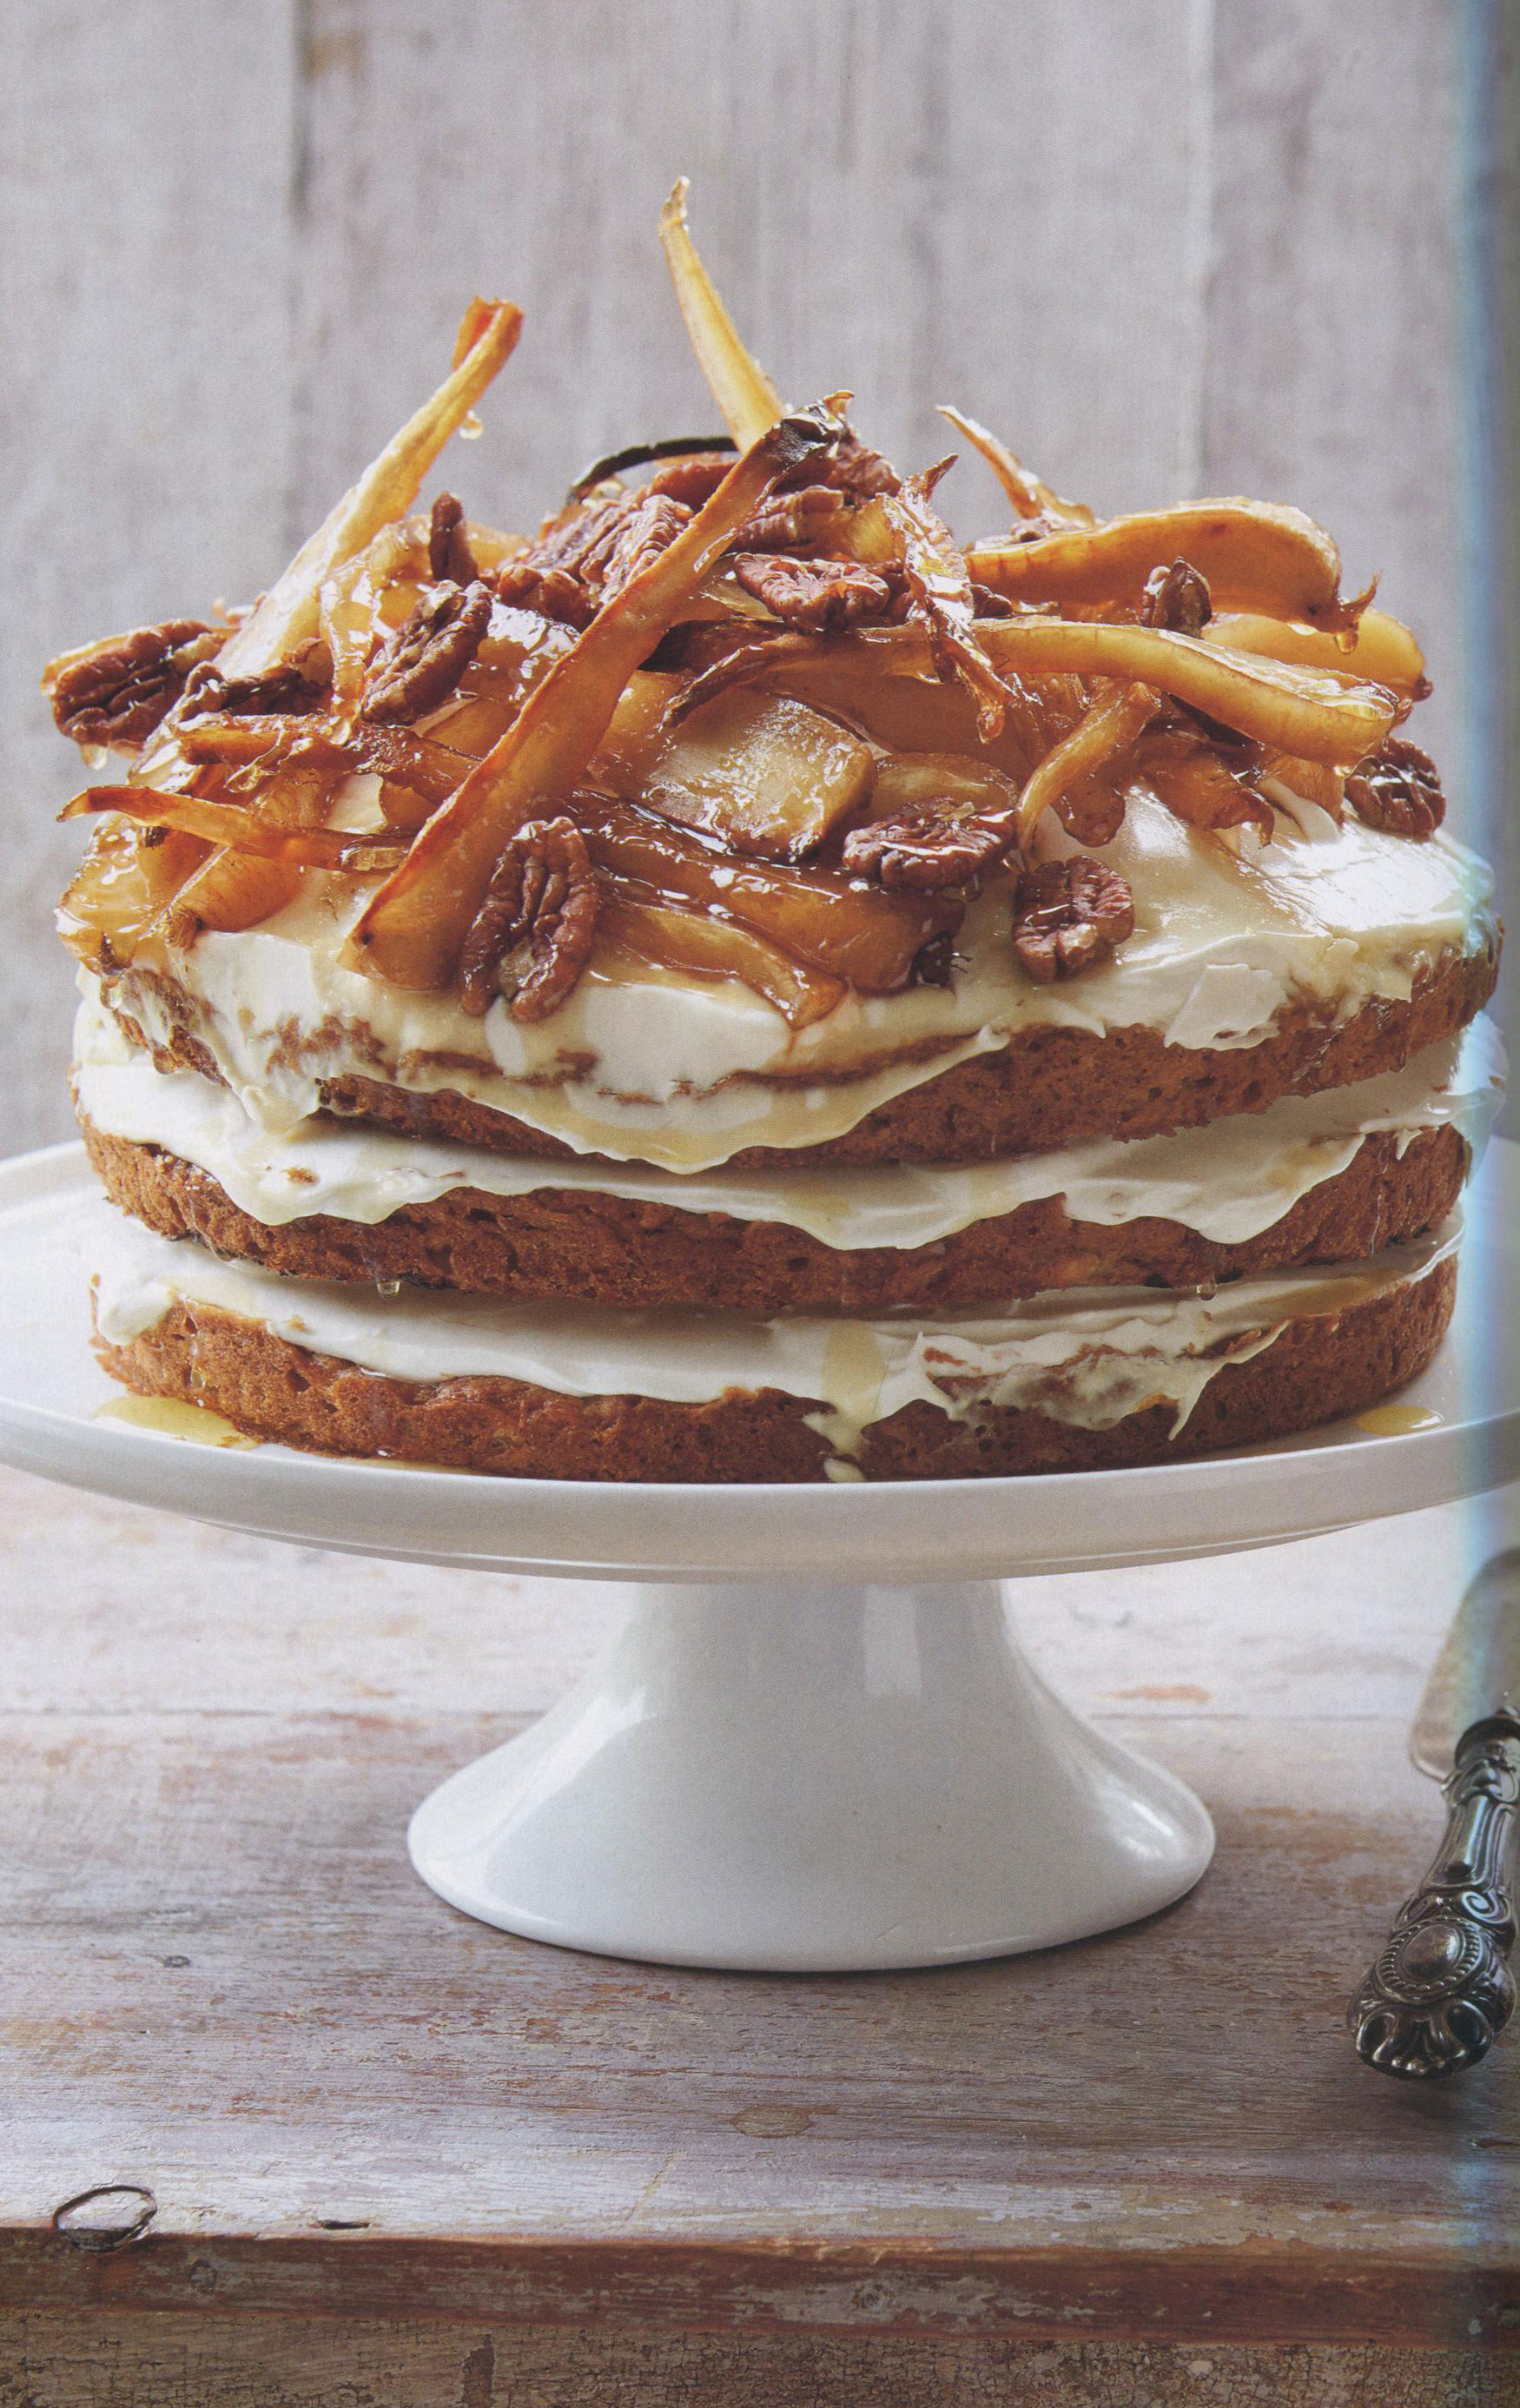 TBT Recipe: Cake of Parsnip, Apple, Pecan and Maple Syrup